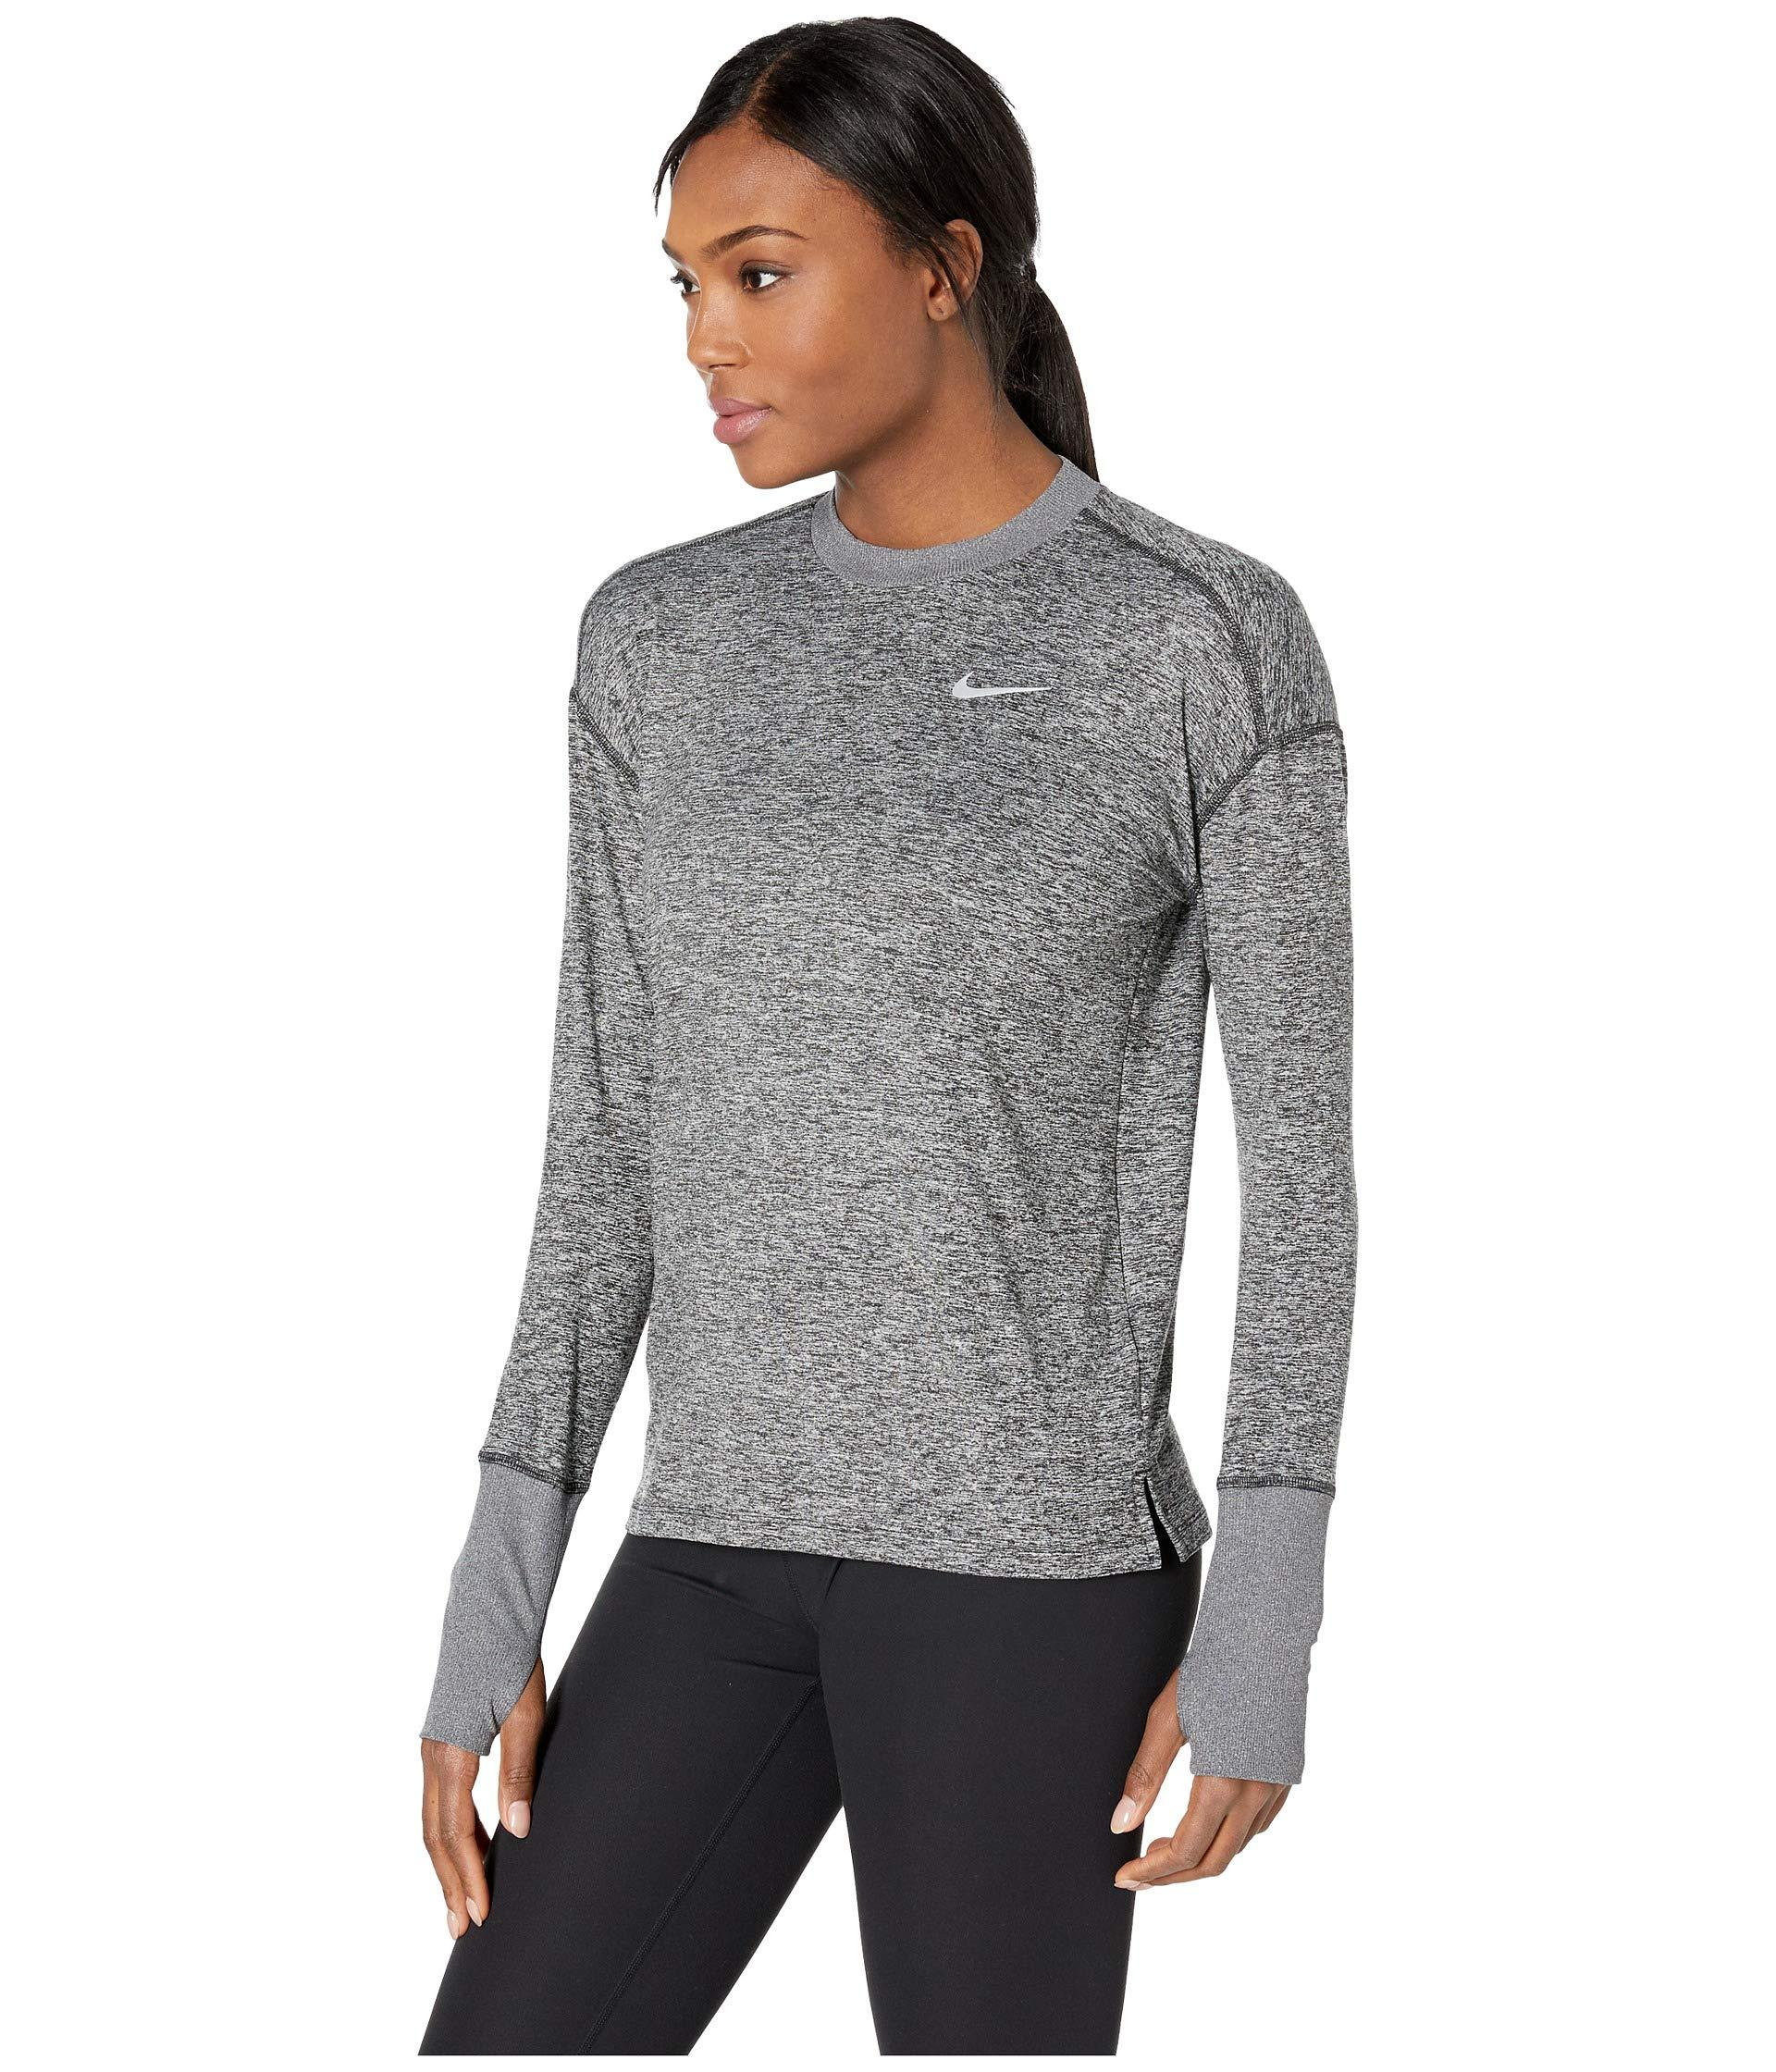 8b28ad5b61ca Lyst - Nike Element Top Crew (black heather reflective Silver) Women s  Clothing in Gray